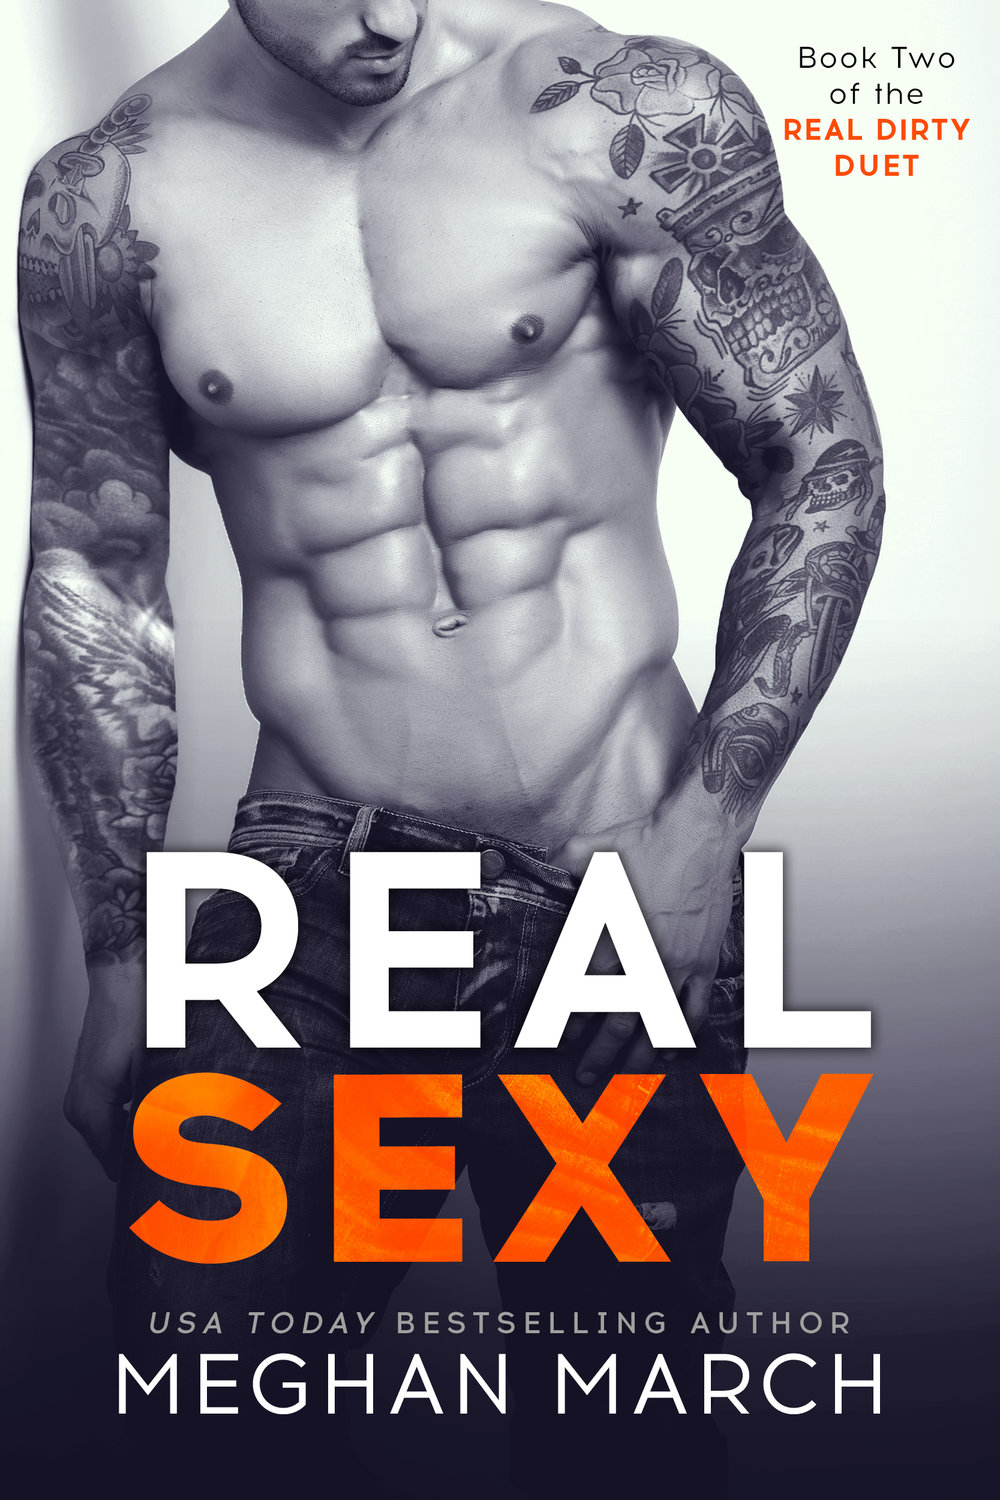 REAL DIRTY ~ Available Now Real Dirty Duet Book 1 ~ By Meghan March I have everything a guy could want—a new single burning up the charts, more money than a simple country boy could spend, and a woman I'm planning to marry. Until she doesn't show up for my proposal. The life I thought was so perfect, isn't. The guy who thought he had everything, doesn't. I've got my heart on lockdown, but life sends me straight into the path of a mouthy bartender who puts me in my place. Now the only place I want to put her is under me. I thought I was done with love, but maybe I'm just getting started. Amazon ~ iBooks ~ B&N ~  Kobo ~ Google Play ~ Goodreads